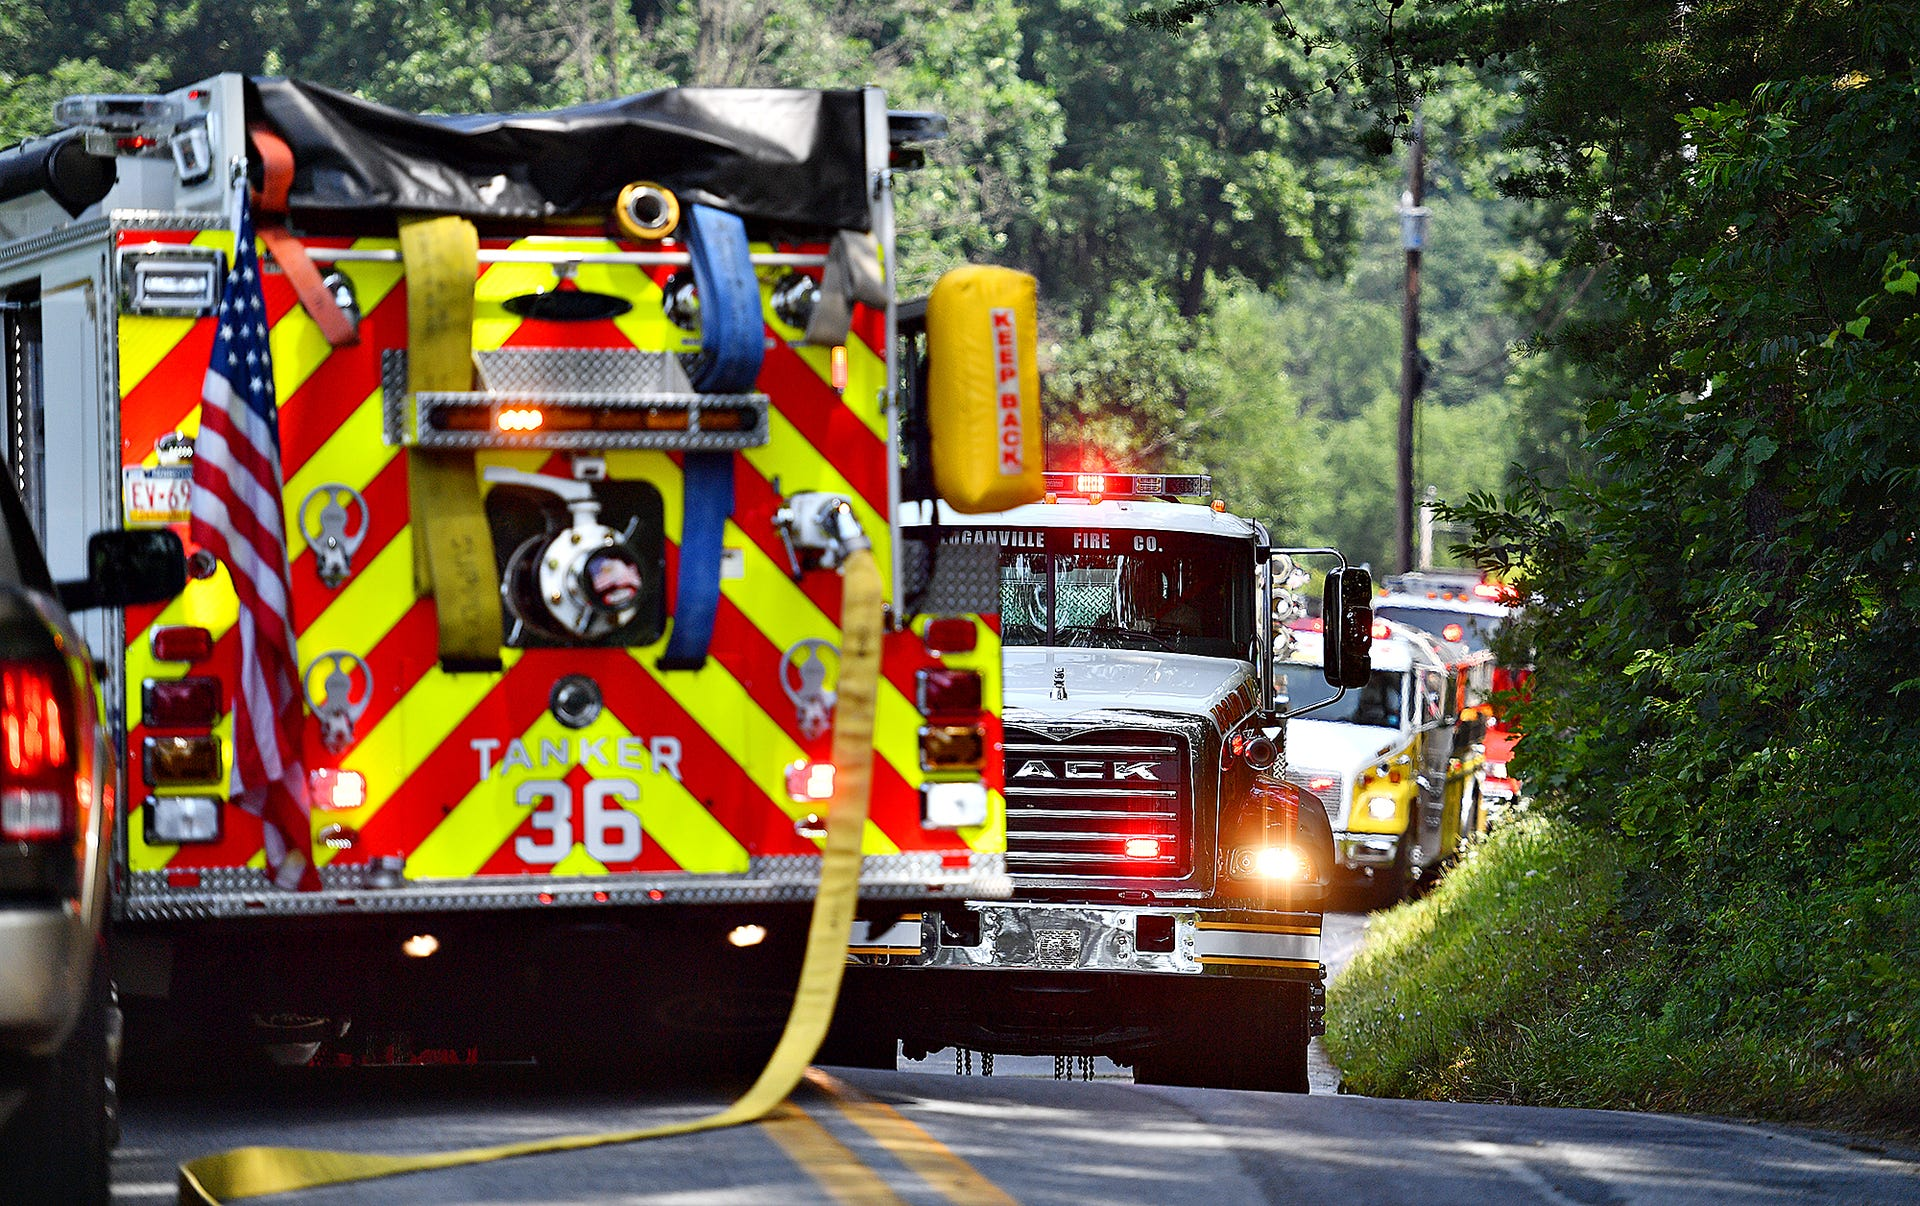 PHOTOS: Crews respond to fire on Green Springs Road in